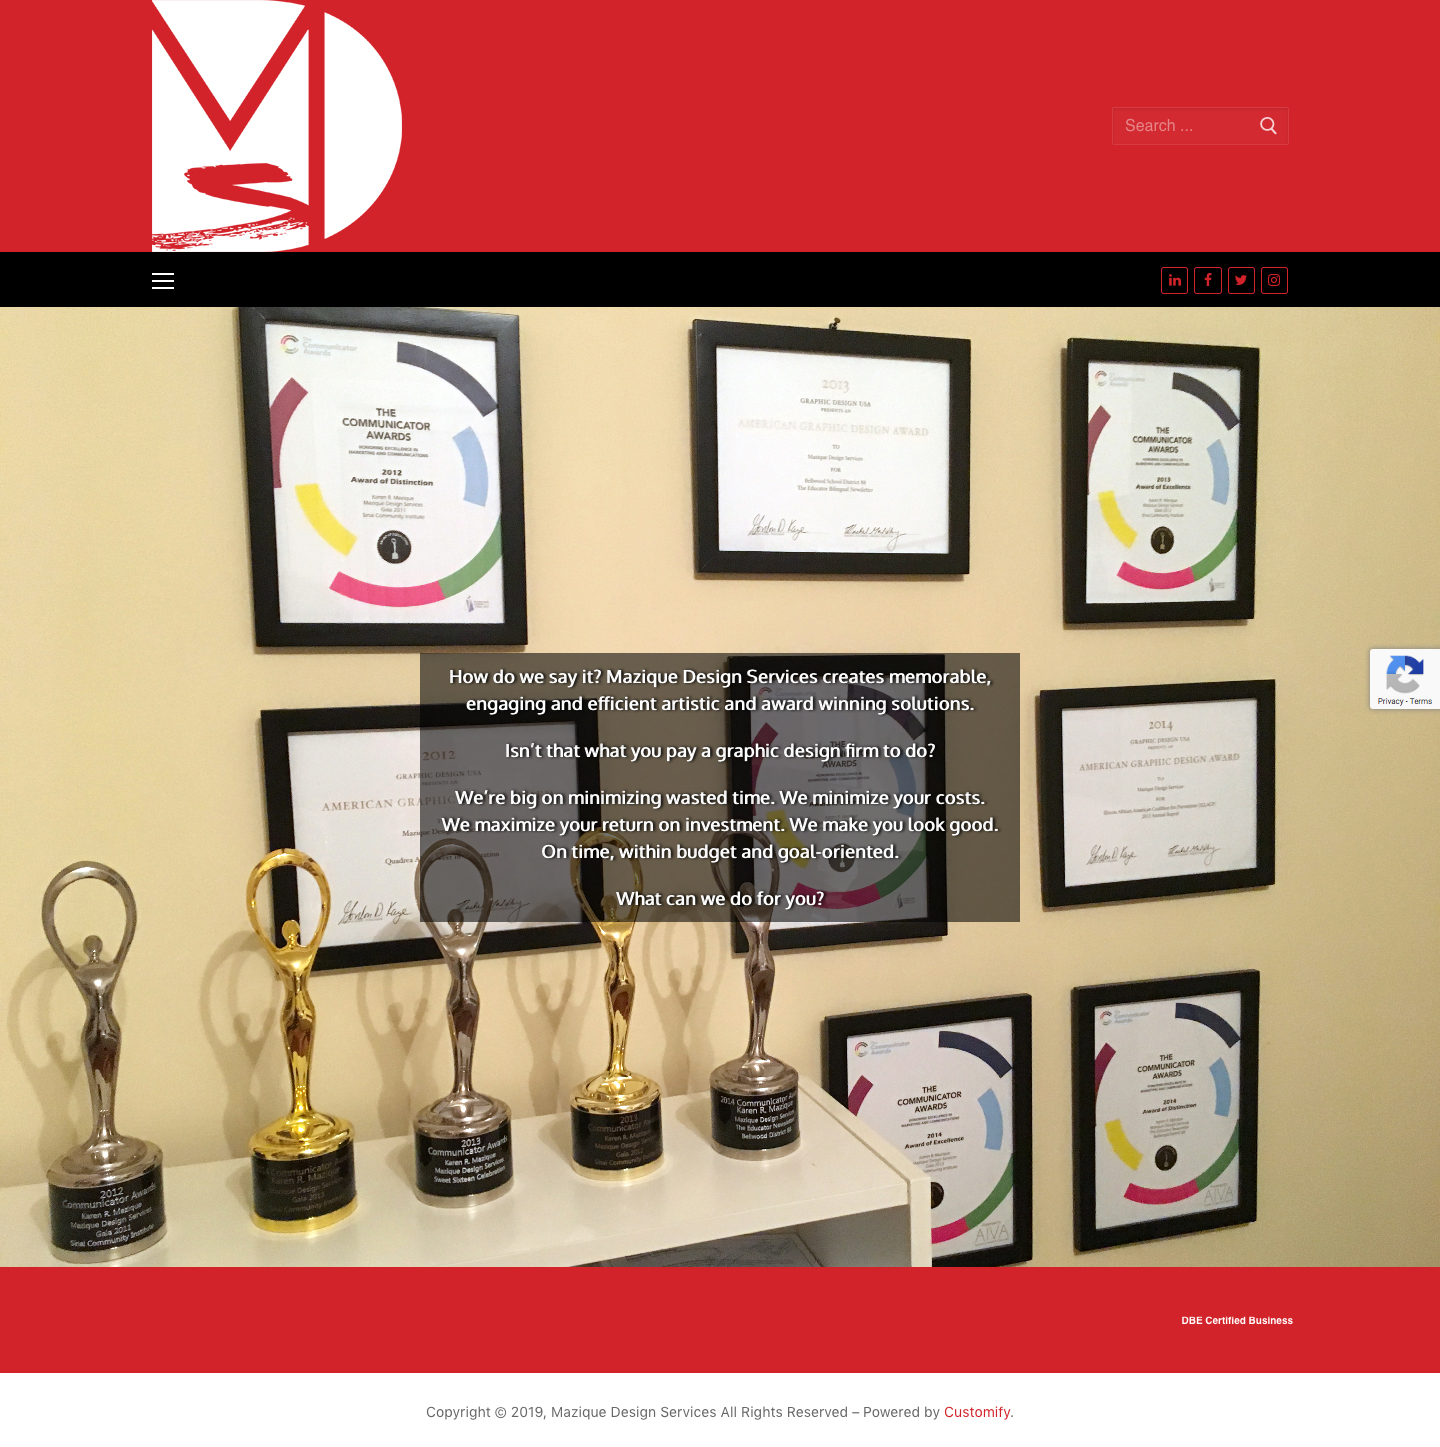 Mazique Design Services website redesign